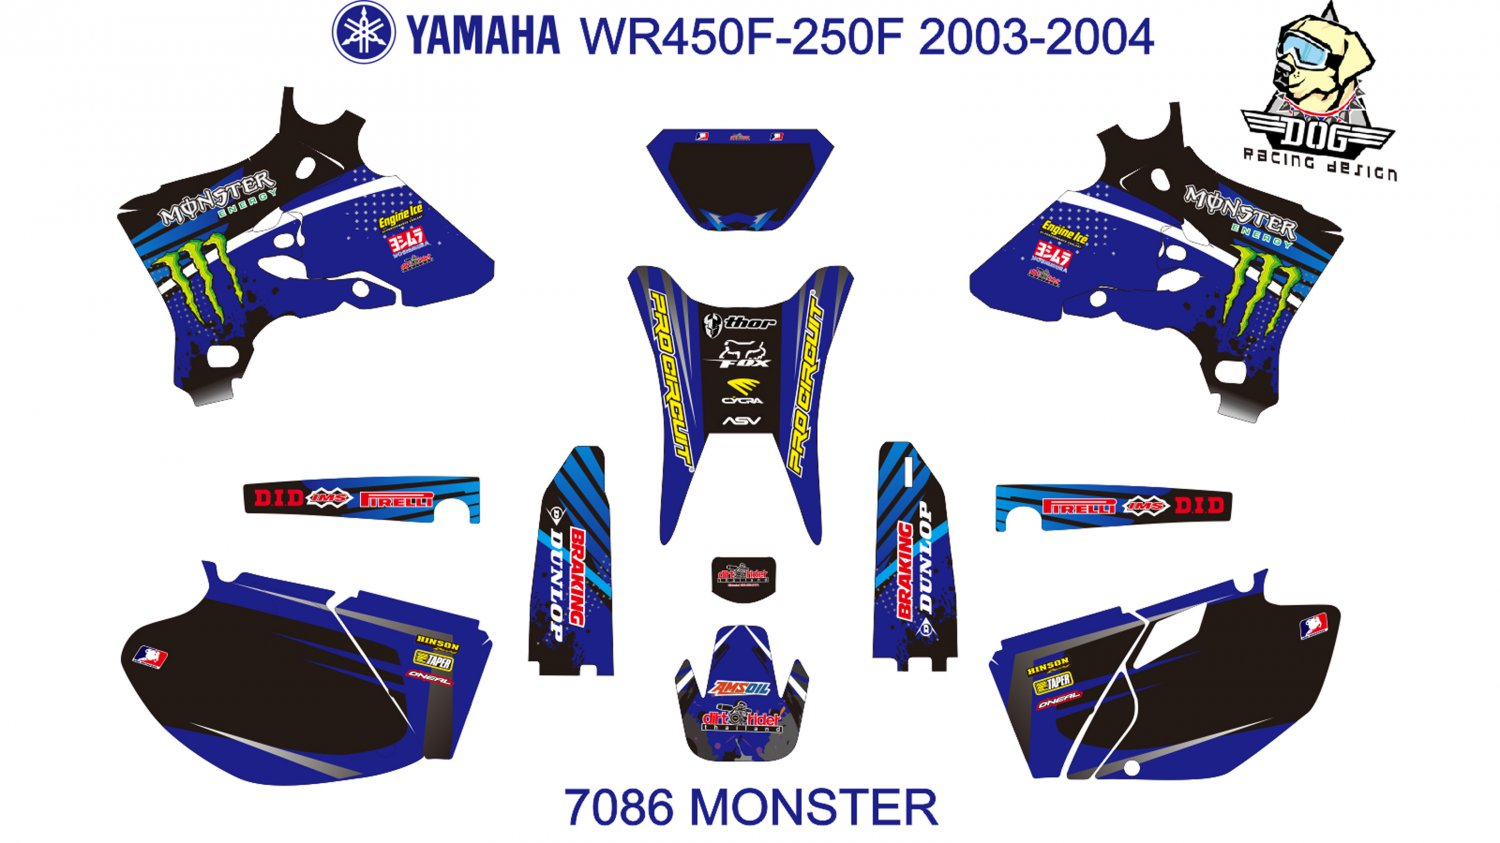 YAMAHA WR450F-250F 2003-2004 GRAPHIC DECAL KIT CODE.7086